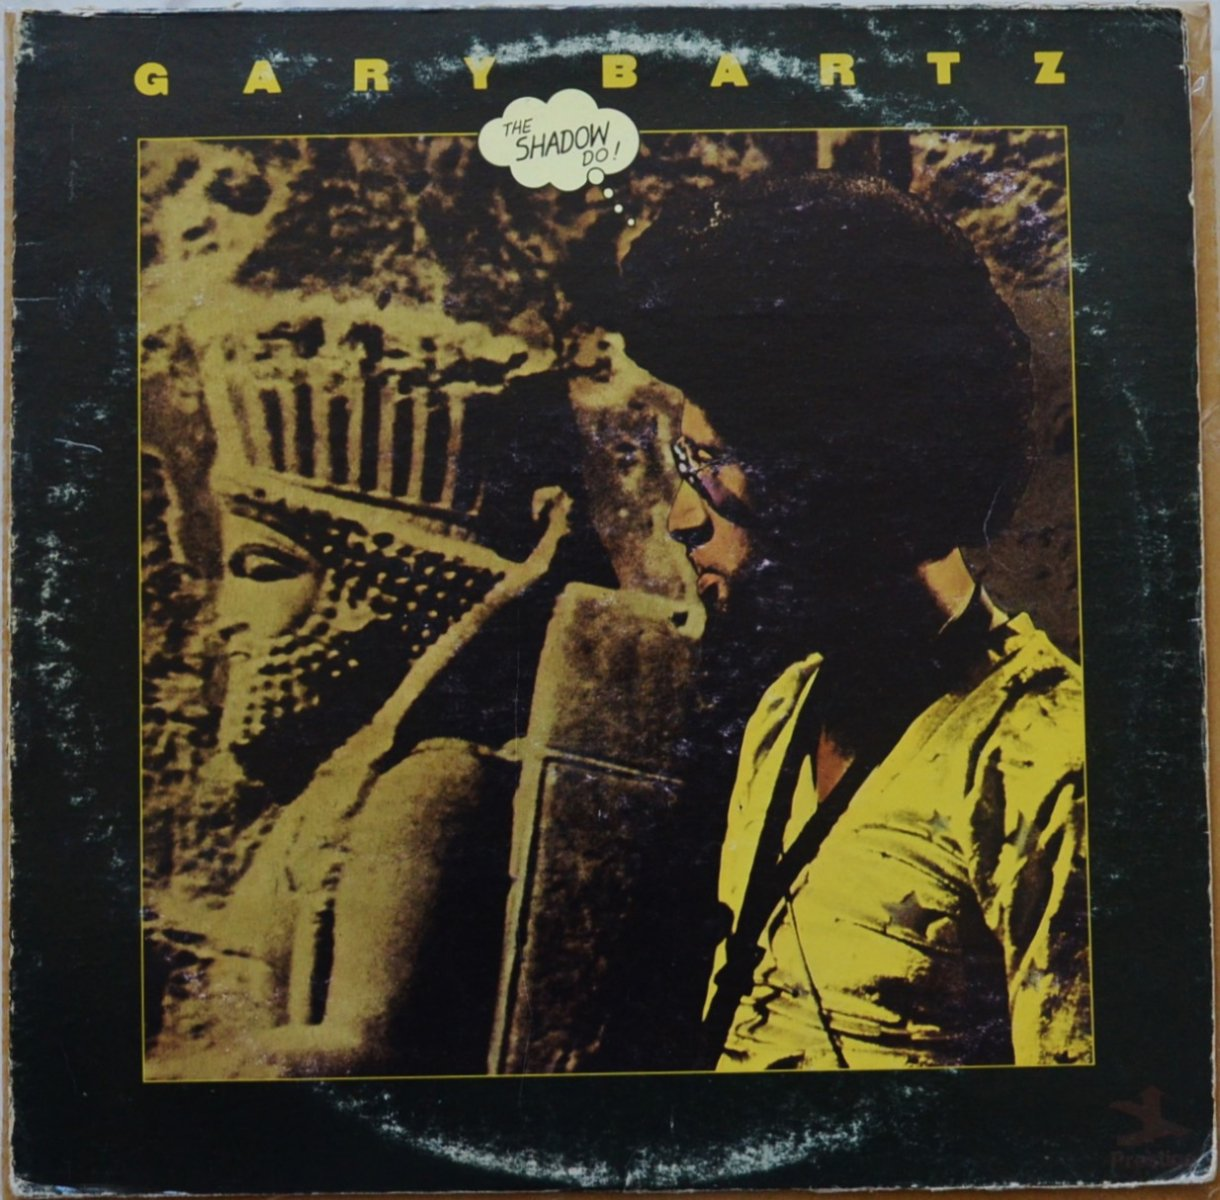 GARY BARTZ ‎/ THE SHADOW DO (LP)